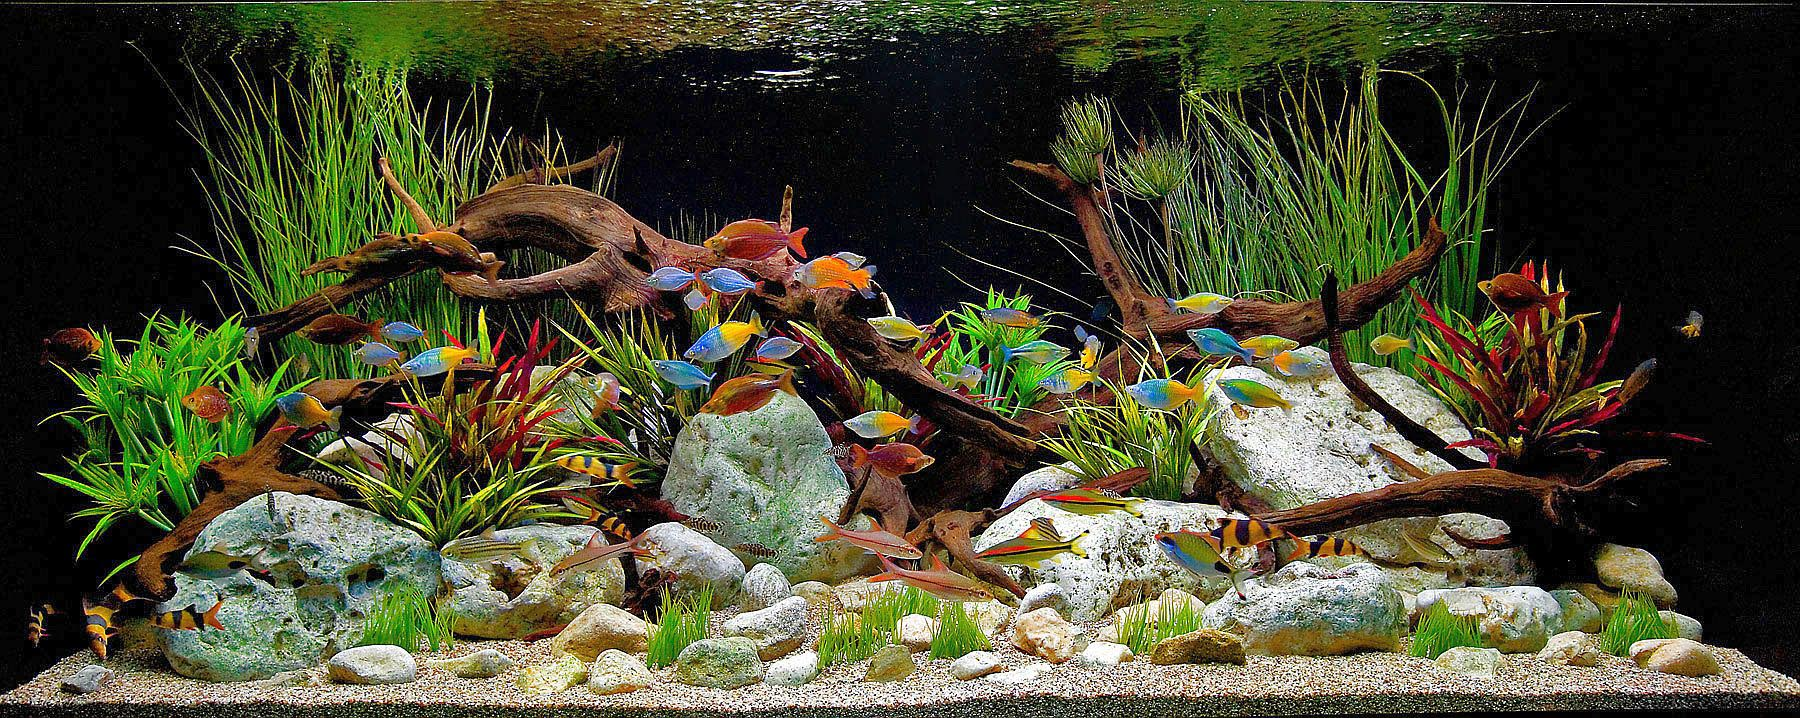 cool freshwater aquarium community fish - Freshwater Aquarium Design Ideas